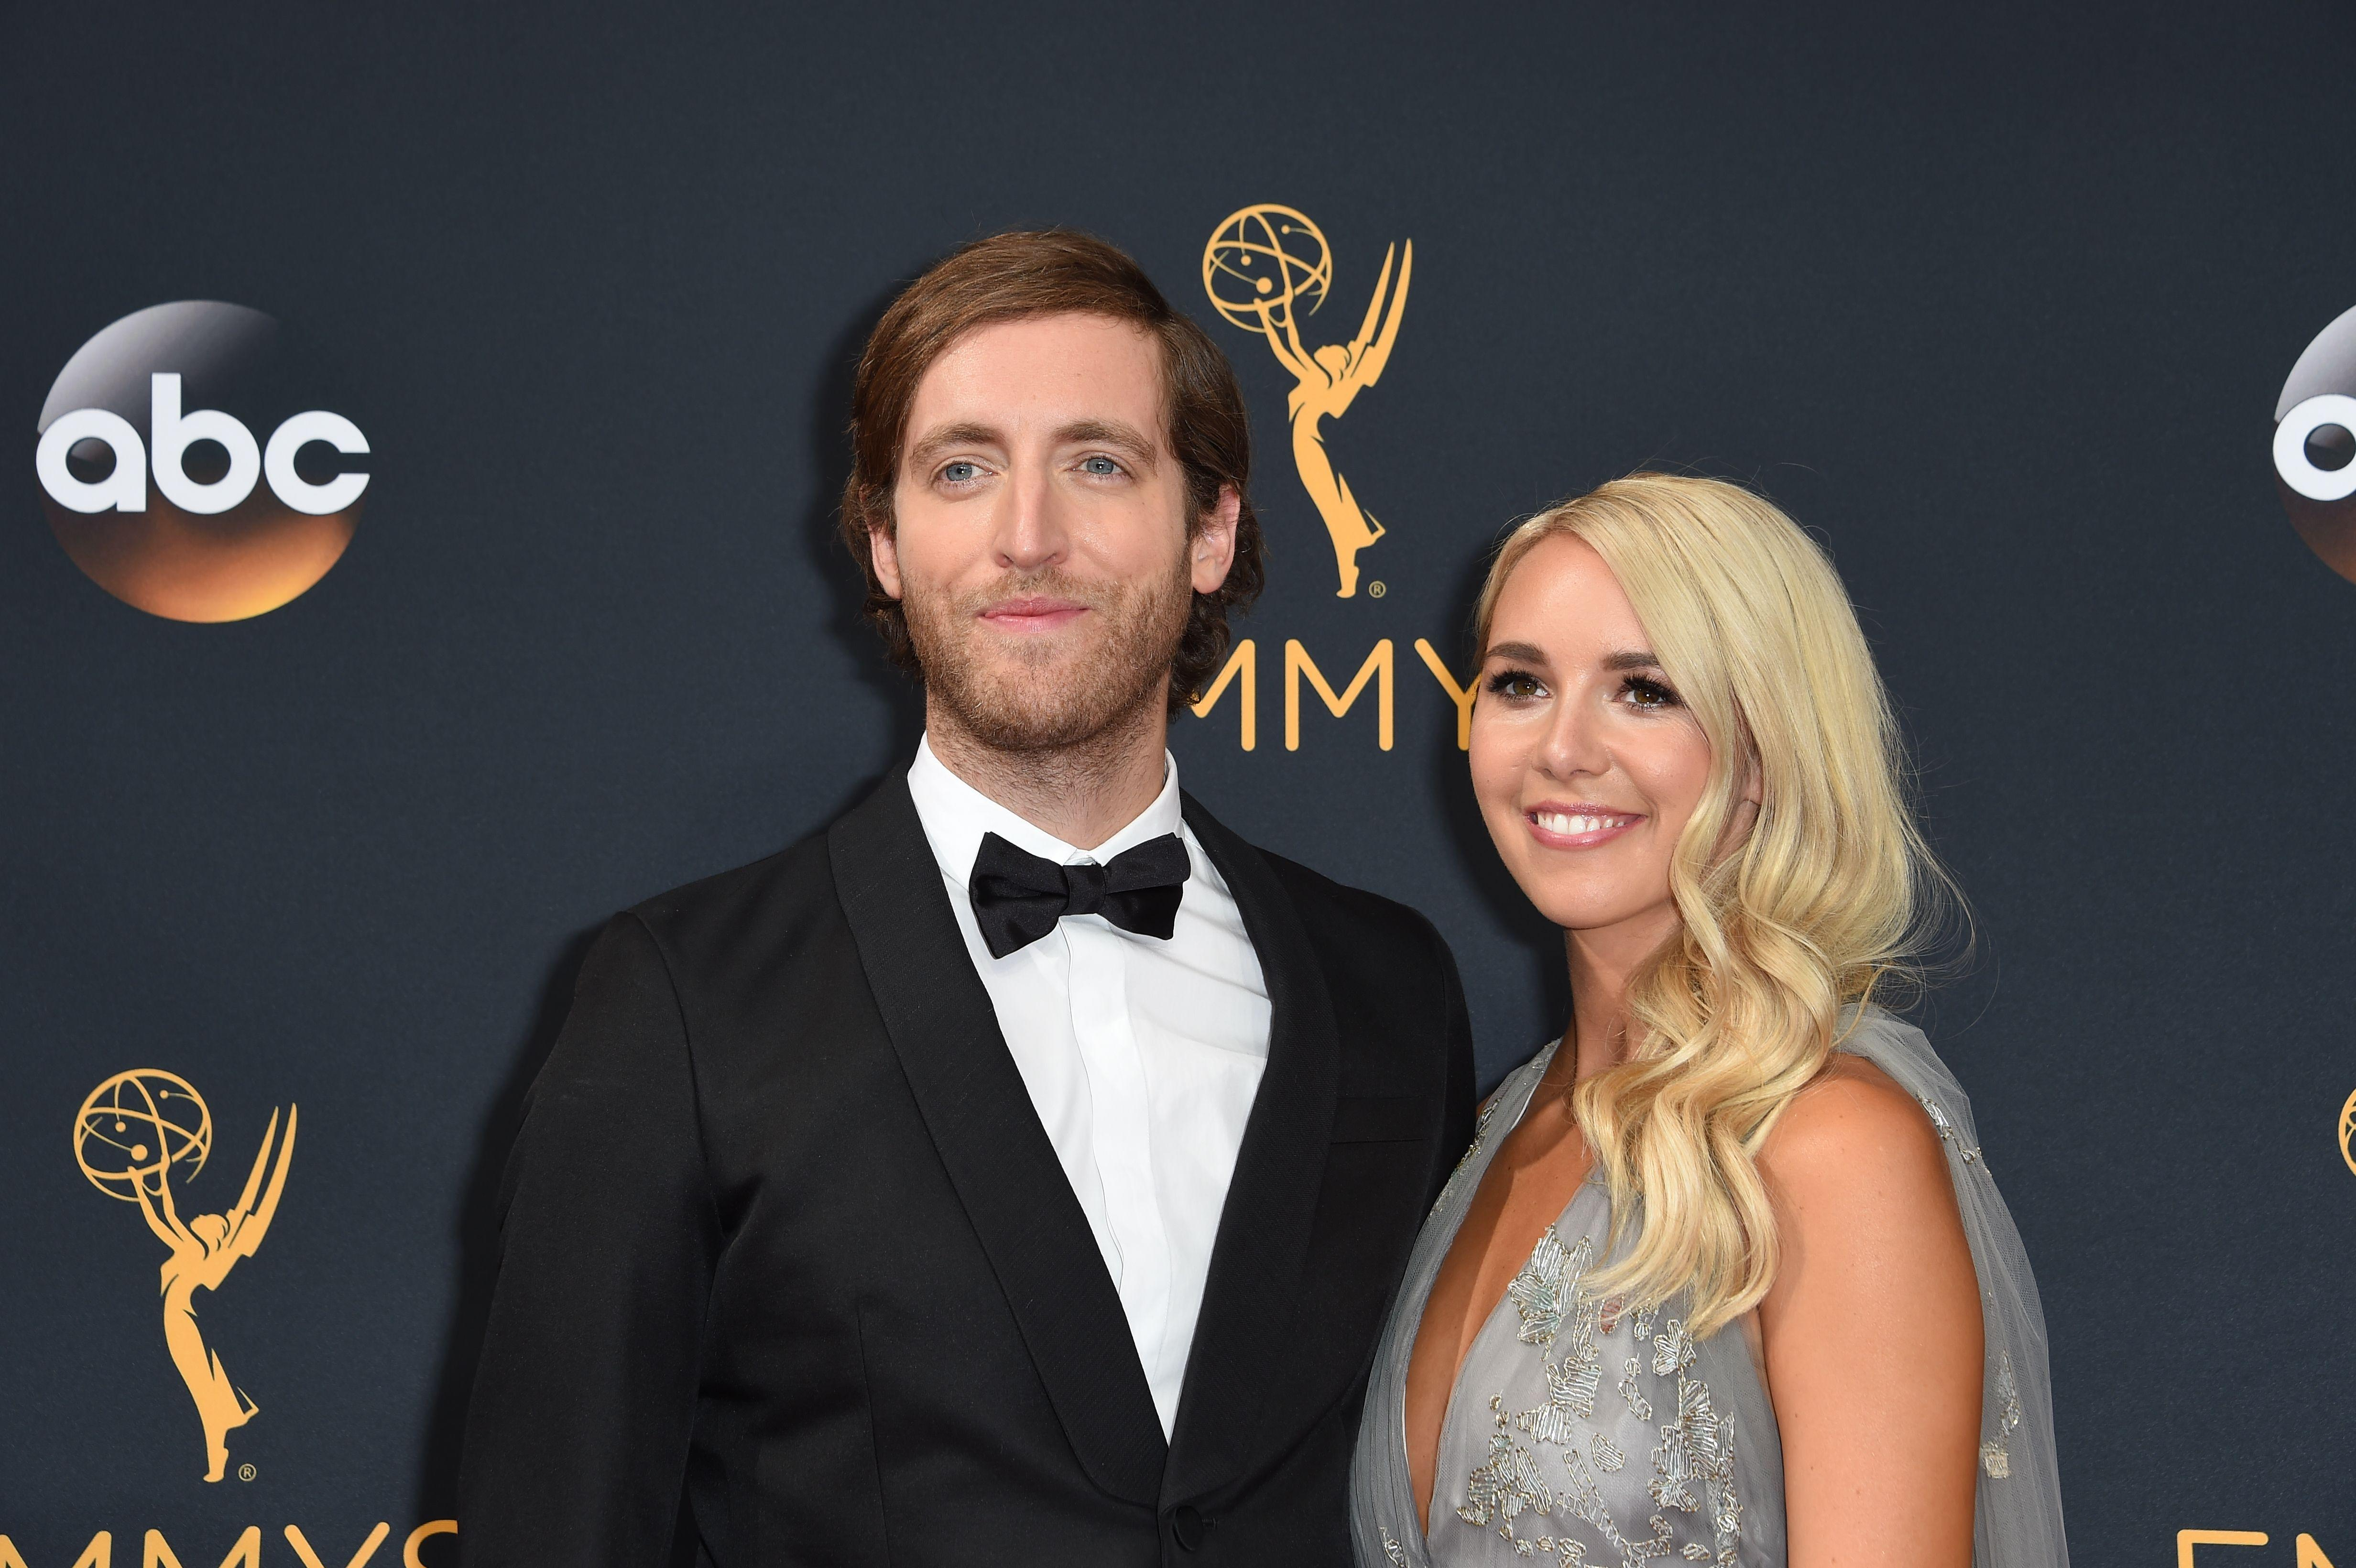 Thomas Middleditch Says He And His Wife Are Swingers